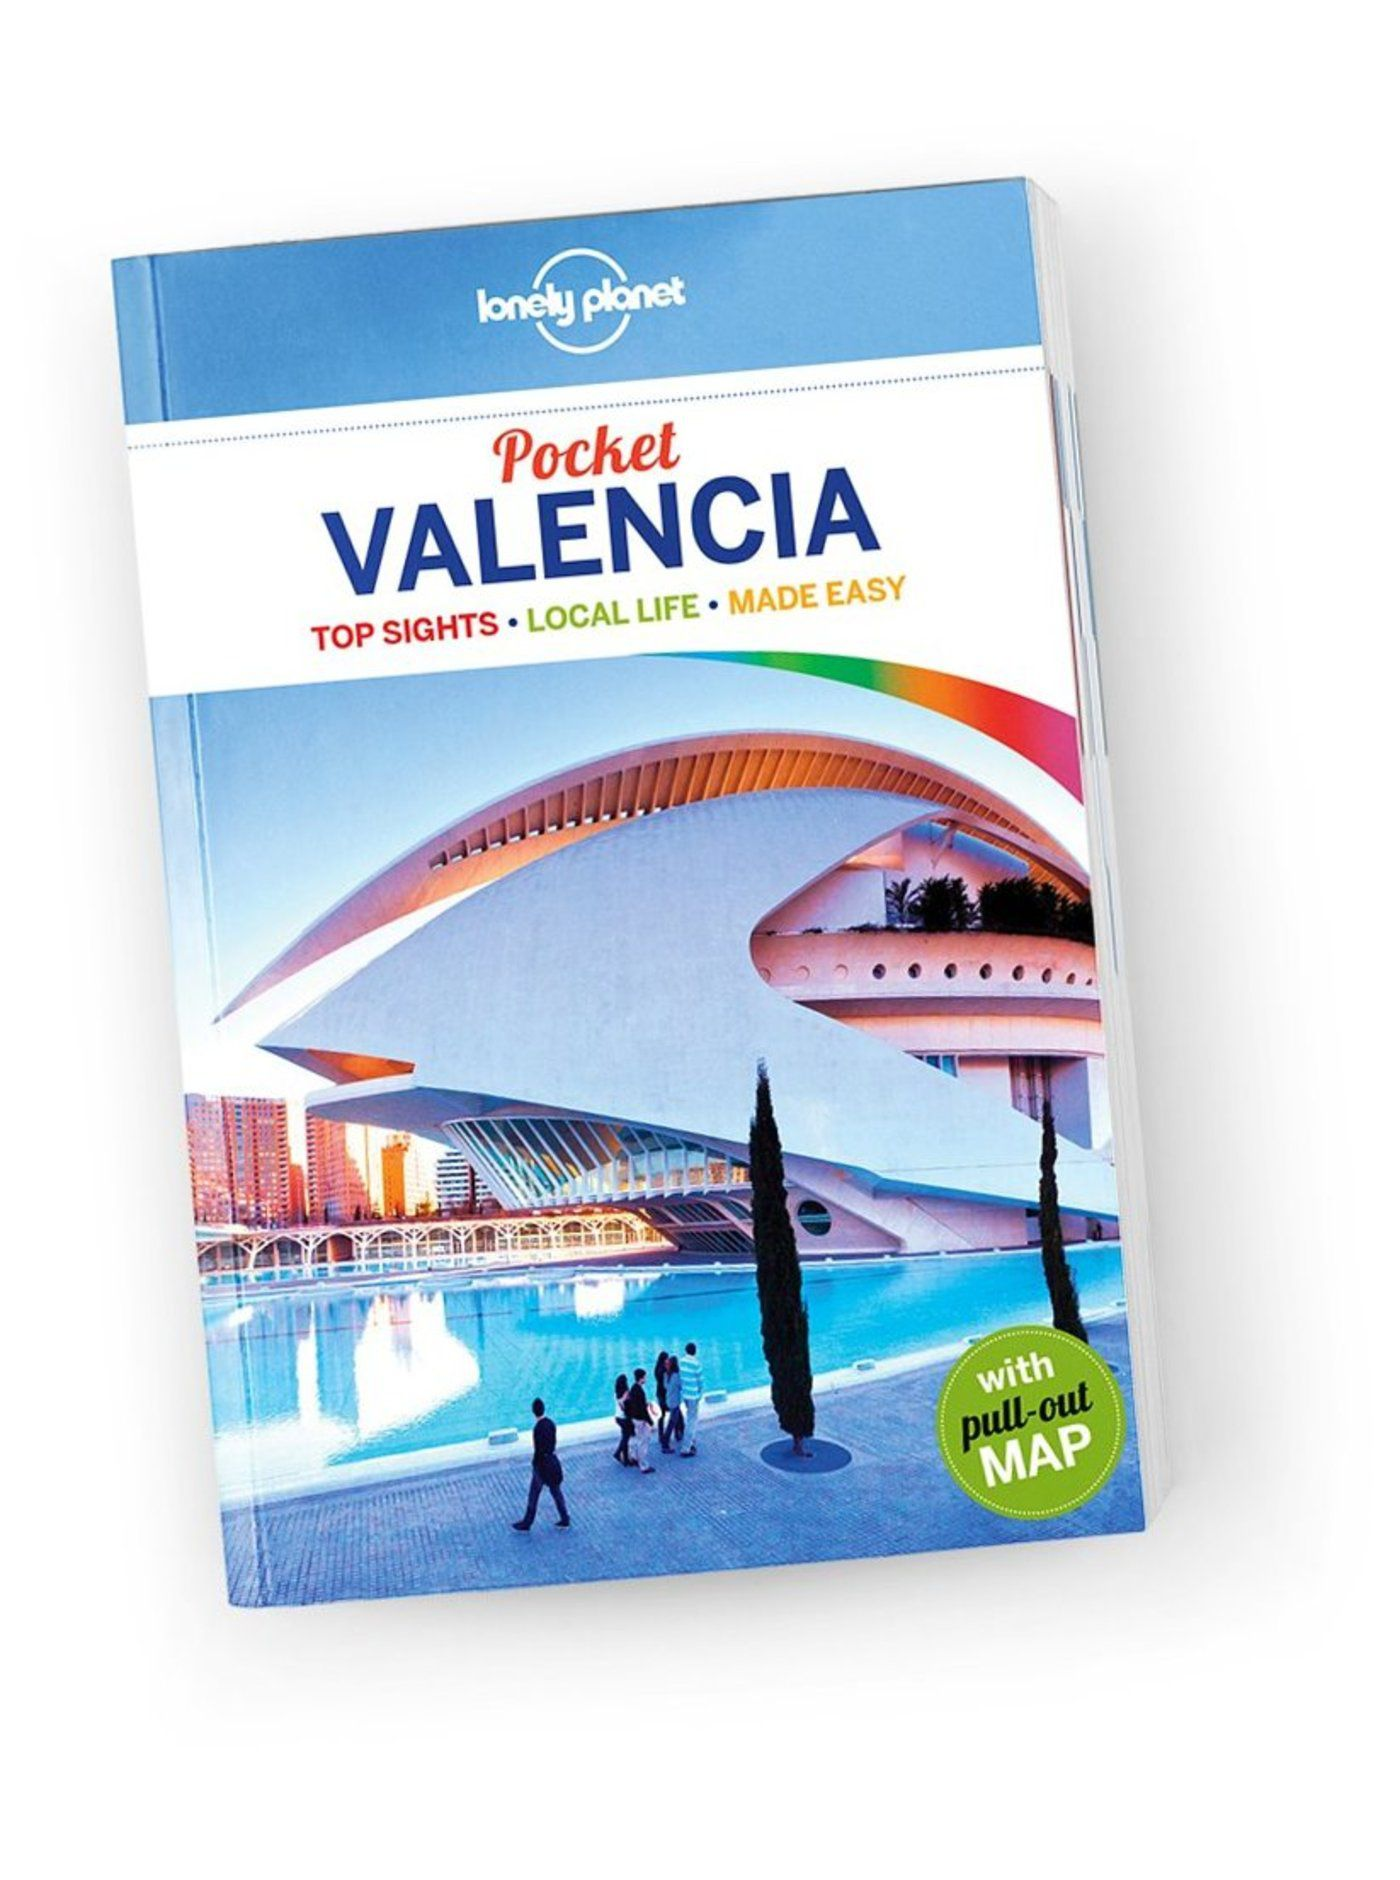 Pocket Valencia